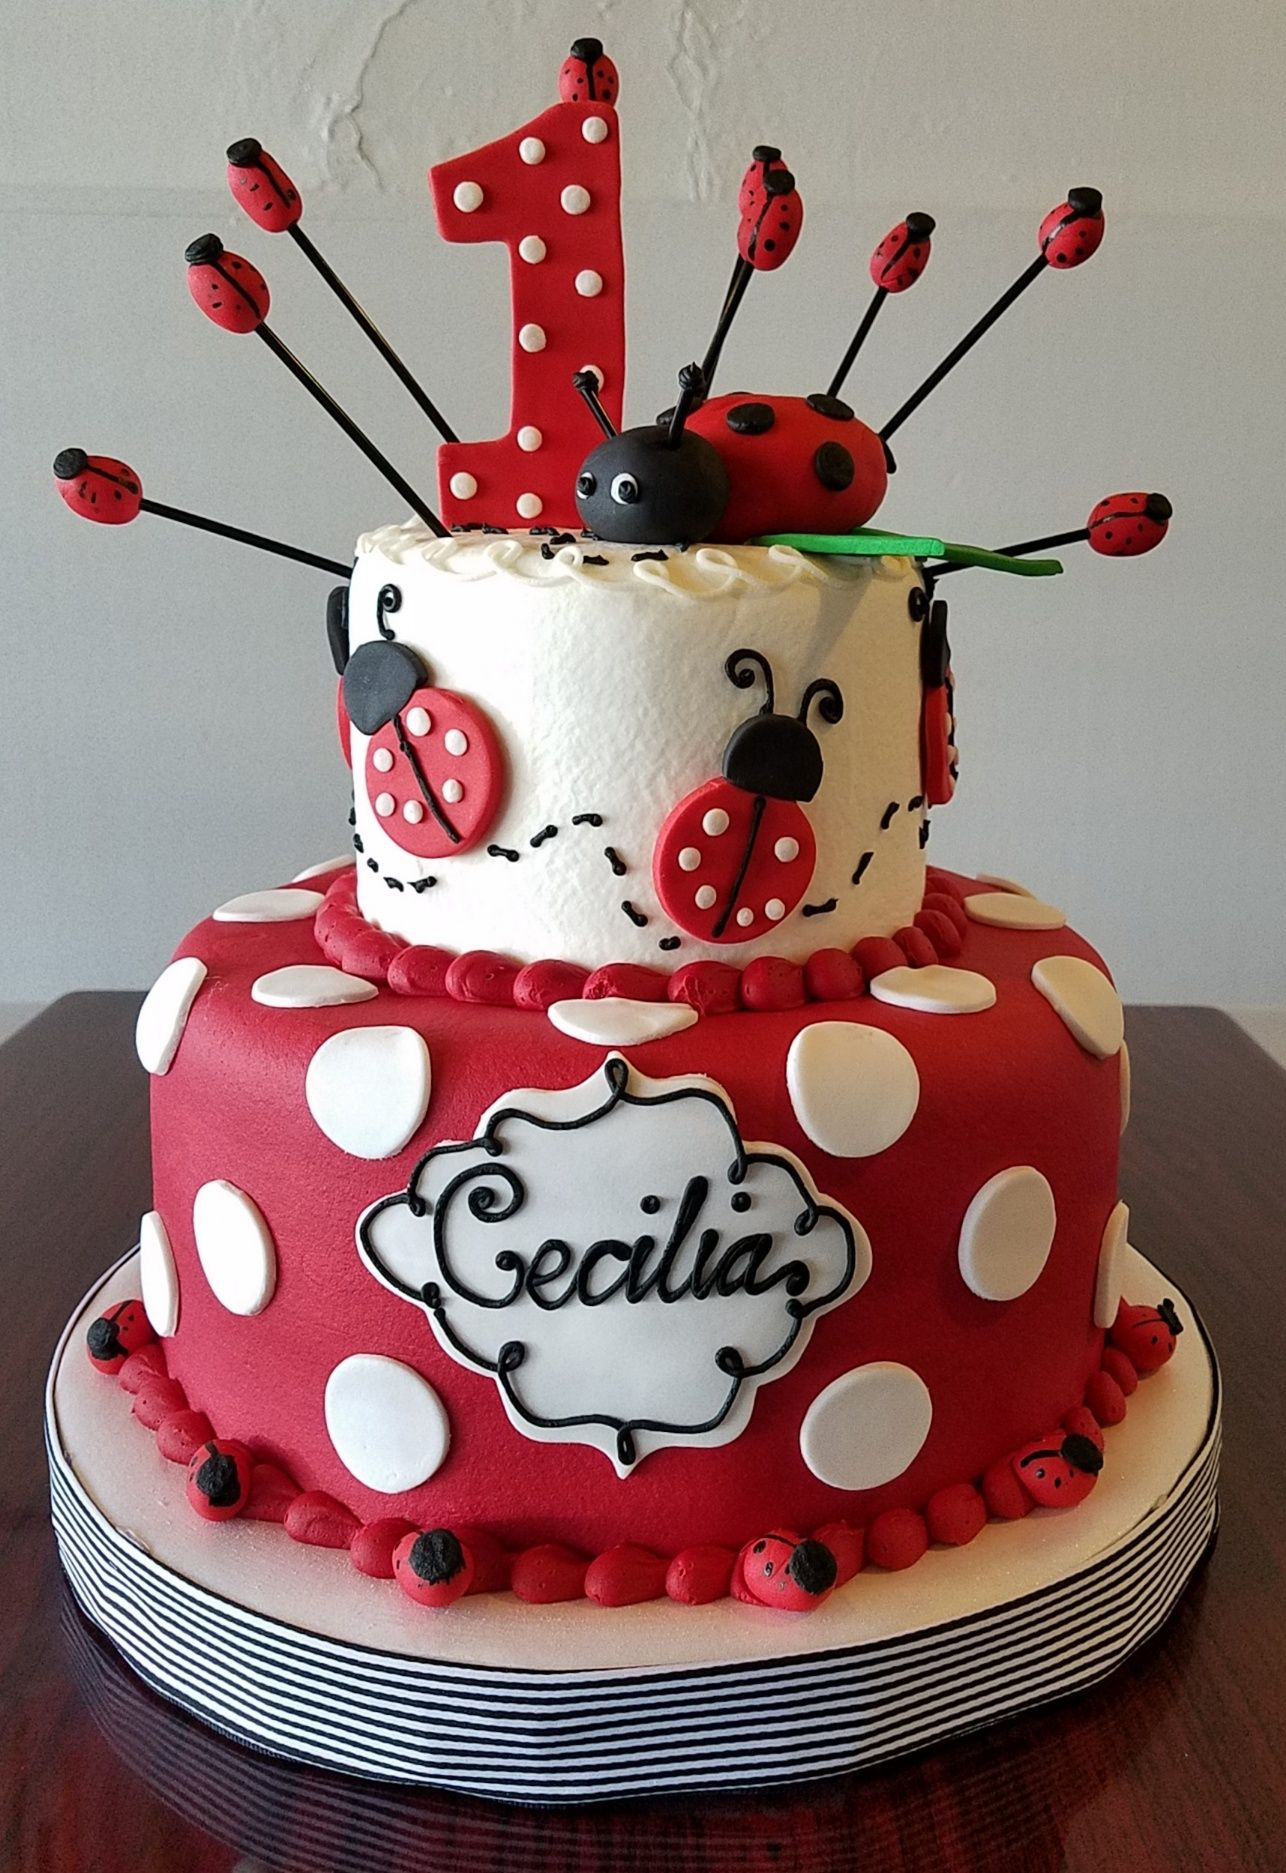 Fantastic Ladybug 1St Birthday Cake Adrienne Co Bakery With Images Personalised Birthday Cards Sponlily Jamesorg